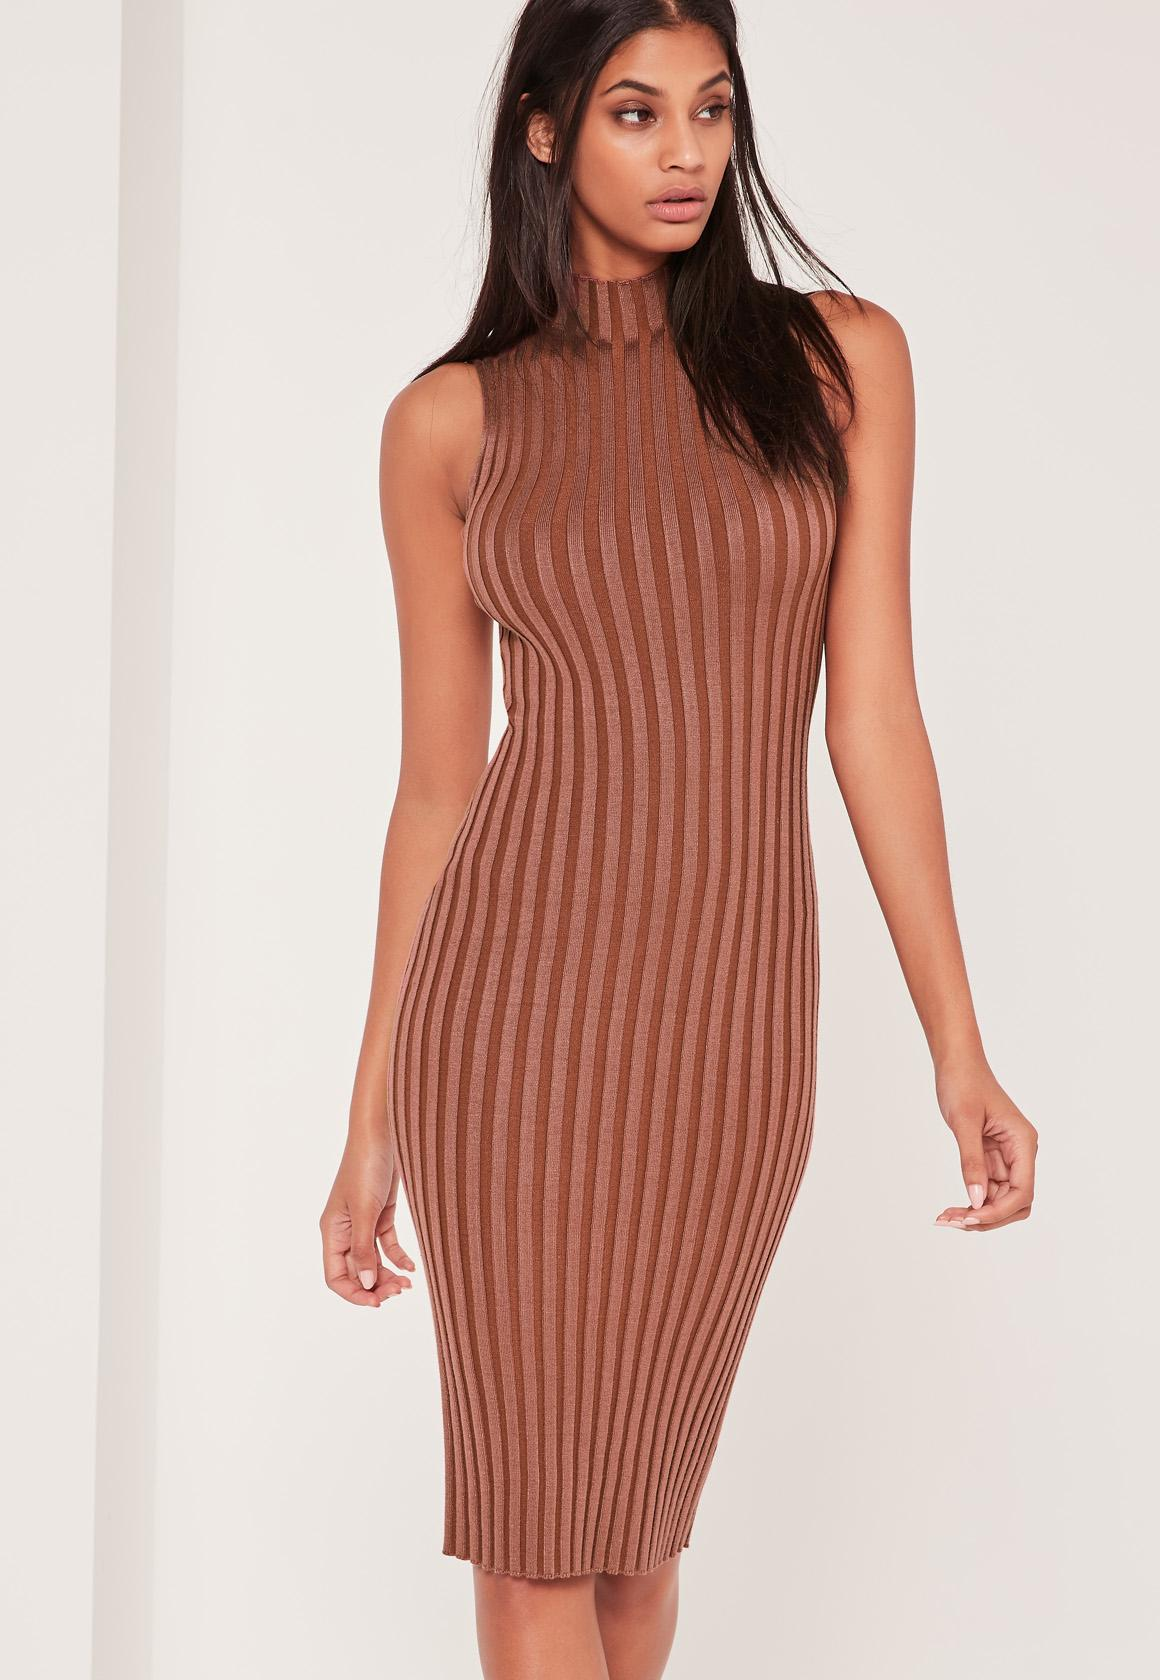 Missguided Knitted Sleeveless Bodycon Dress Free Shipping Choice ApmlCSC